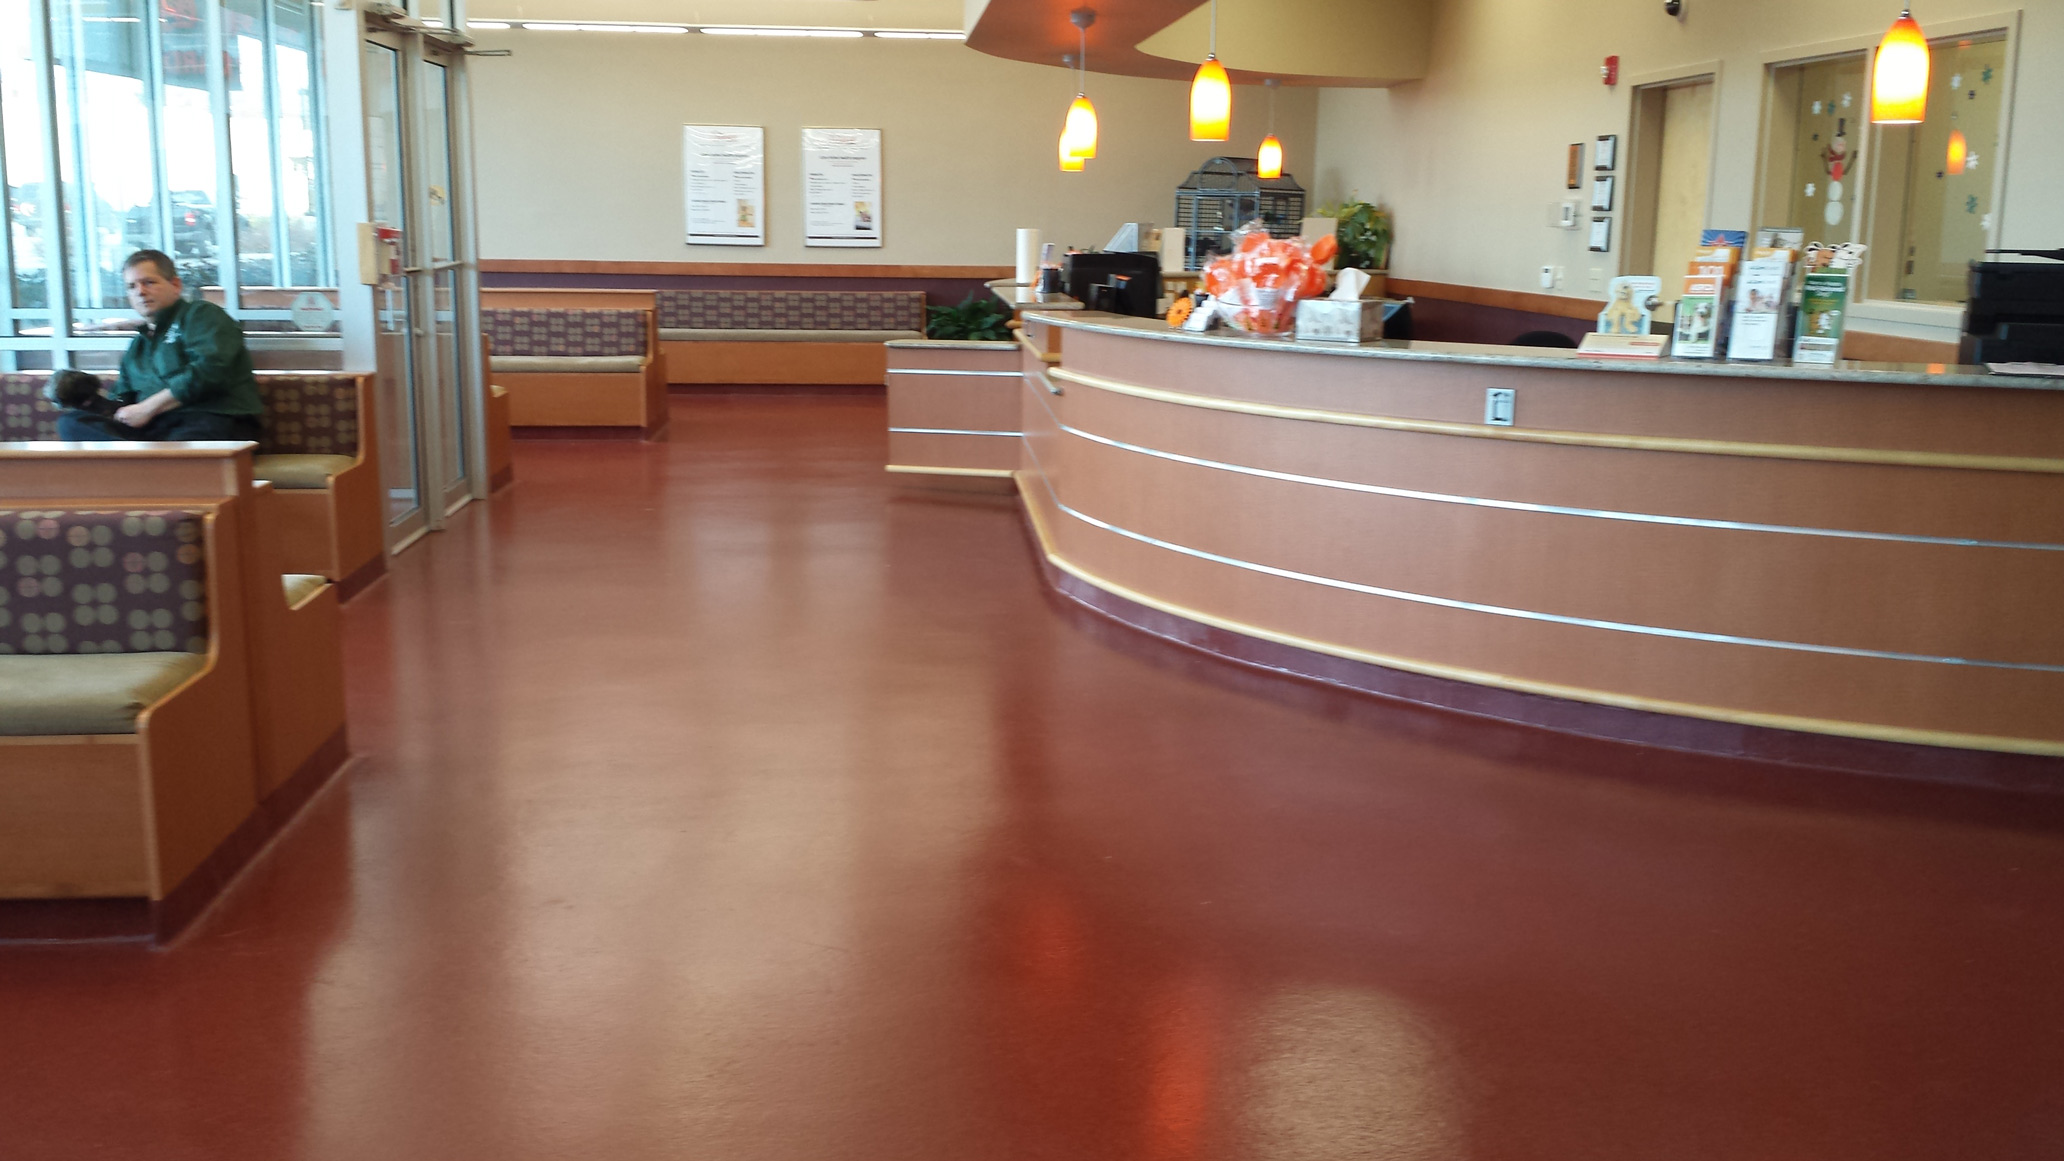 Solid Color Waterproof Epoxy Flooring - UniKrom 185 from Palma Inc. is slip-resistant, non-porous and designed for use in multiple applicaitons